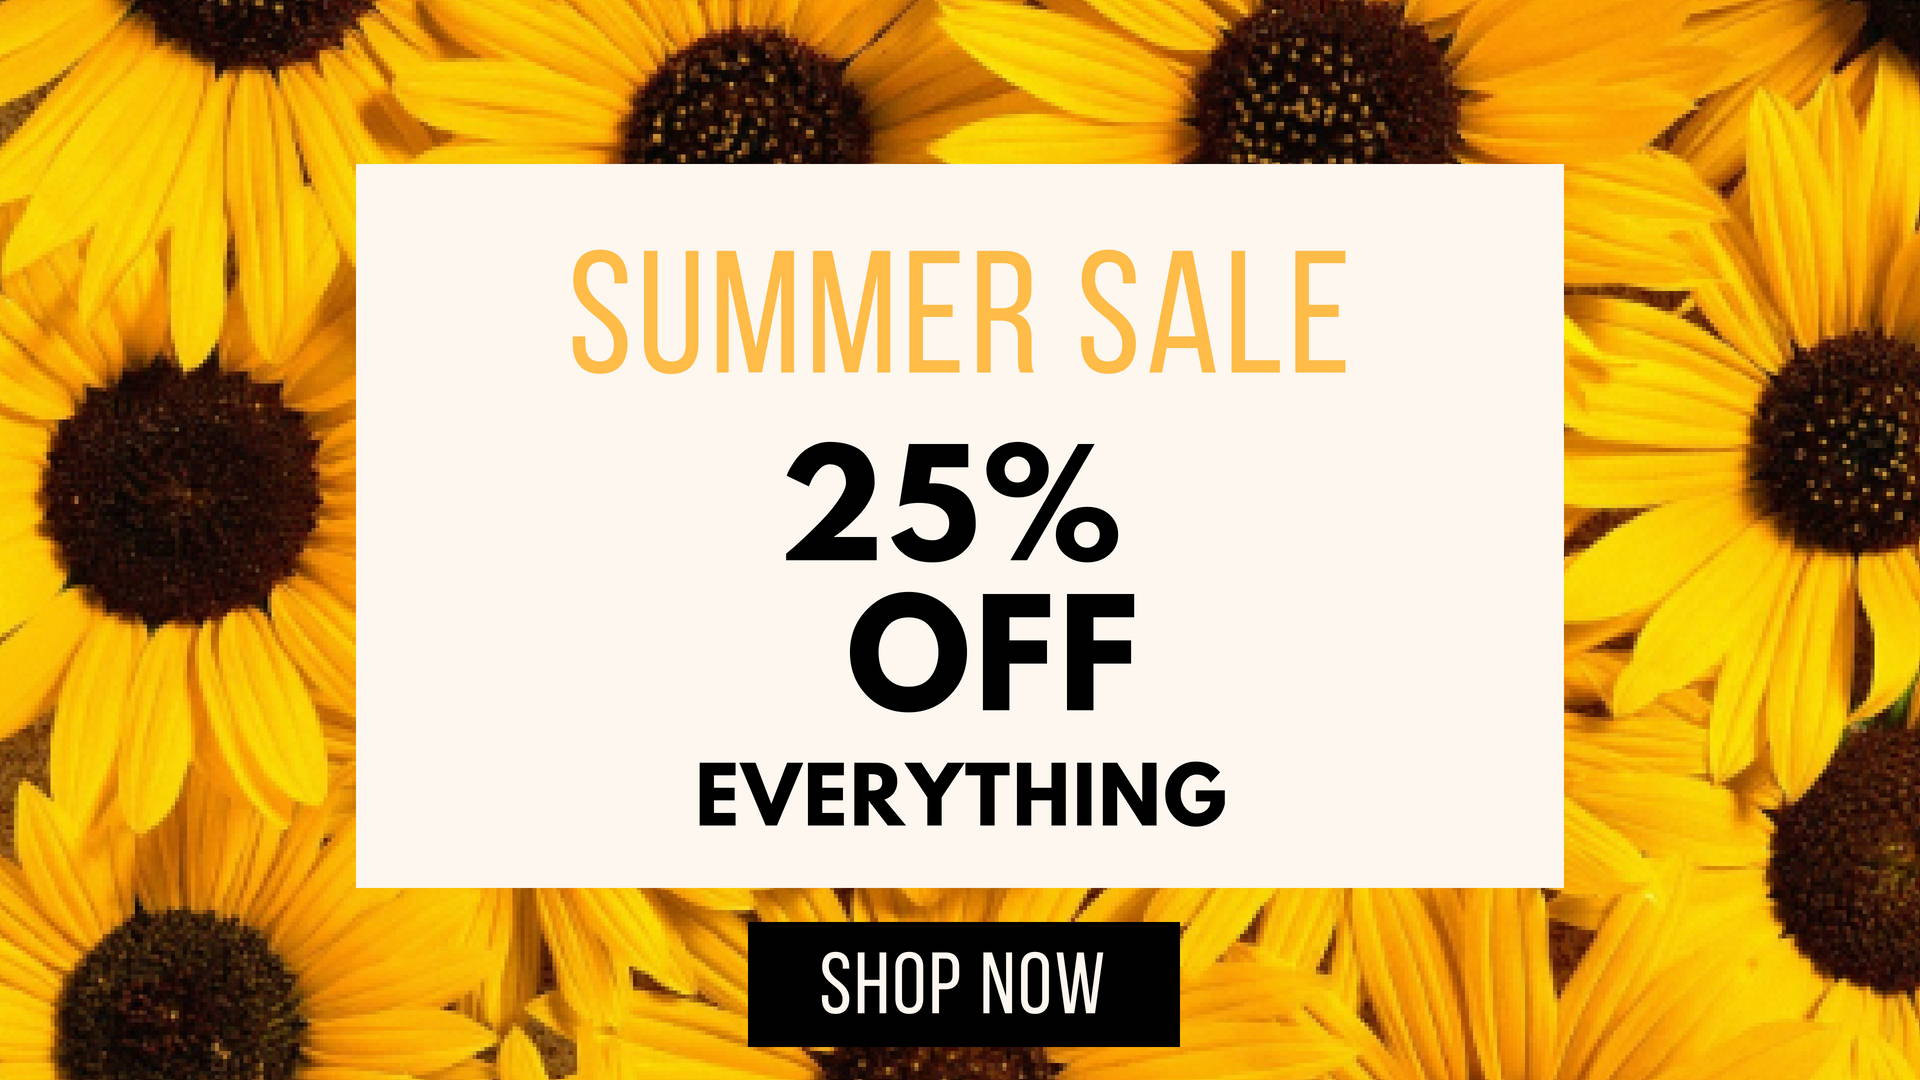 Recoveted - Summer Sale - 25% Off Everything